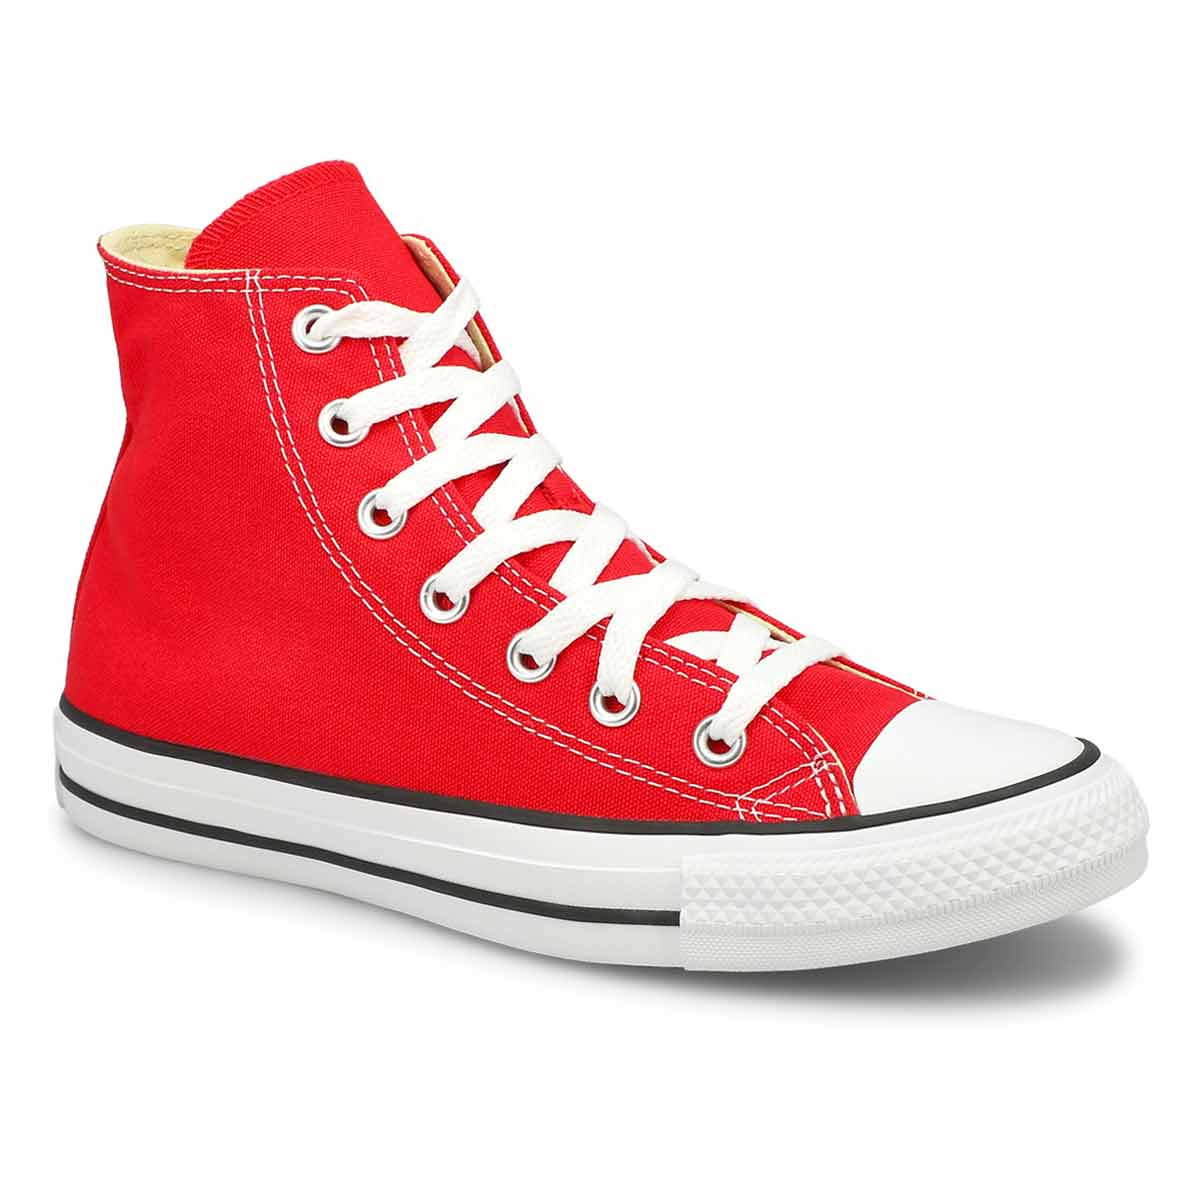 Lds CT All Star Core Hi red high top snk